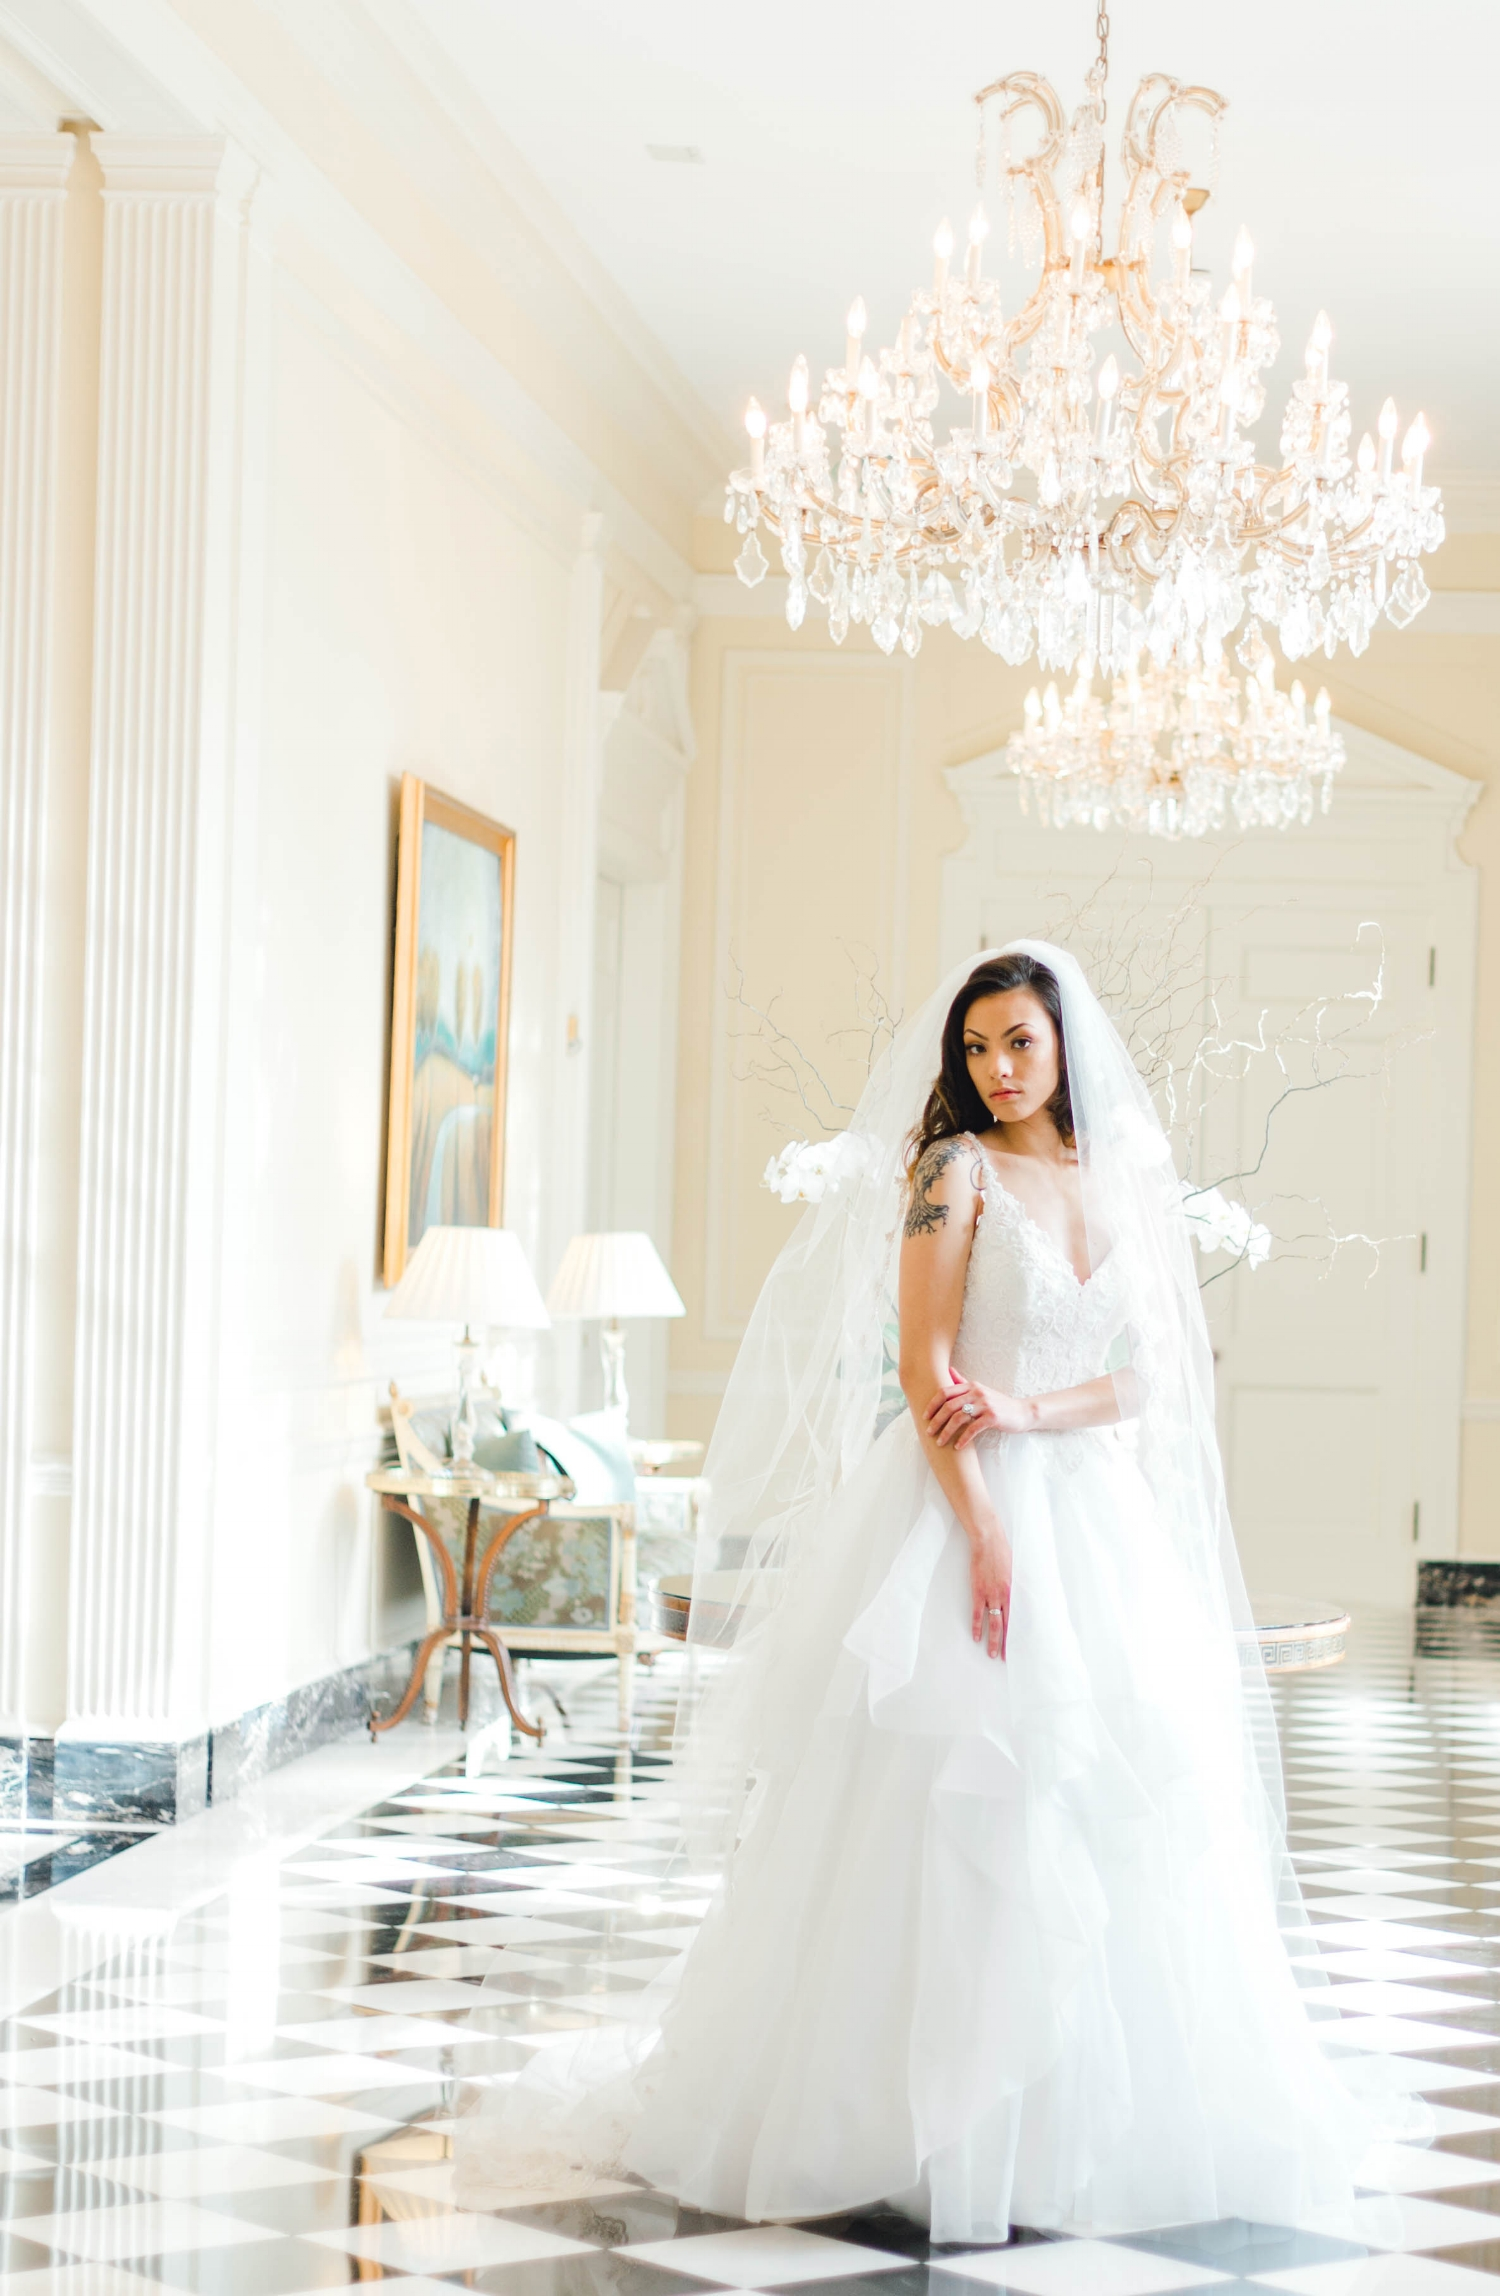 A bride on a checkerboard floor with crystal chandeliers.